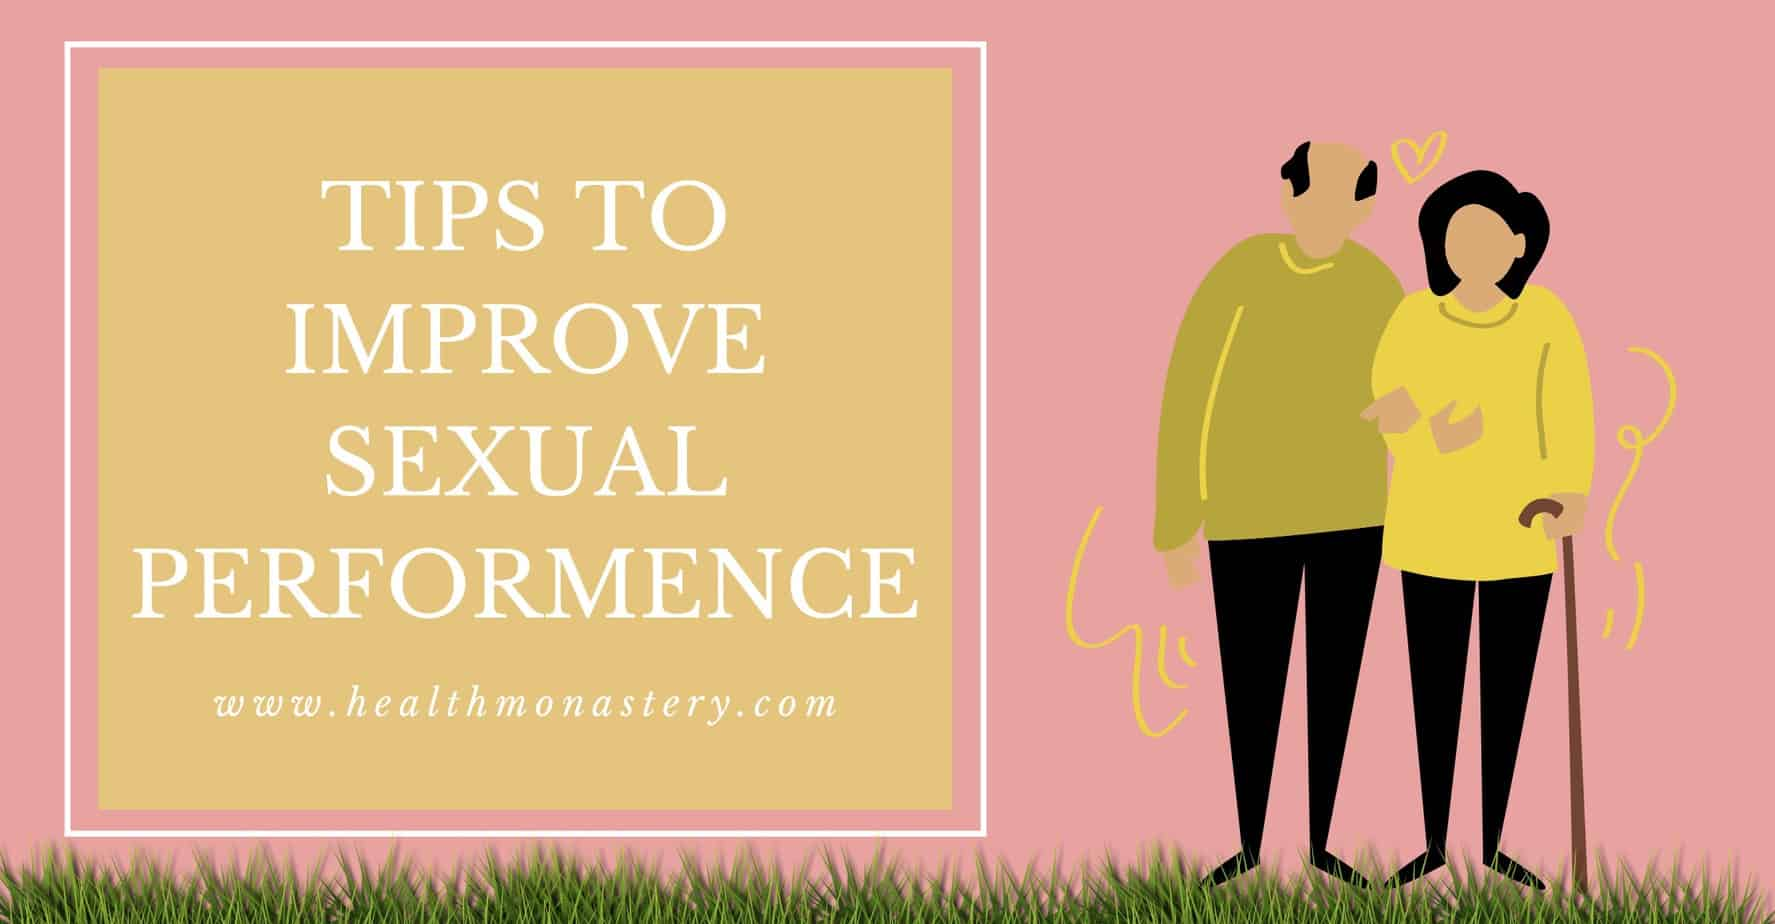 Tips to improve sexual performance in men @healthmonastery